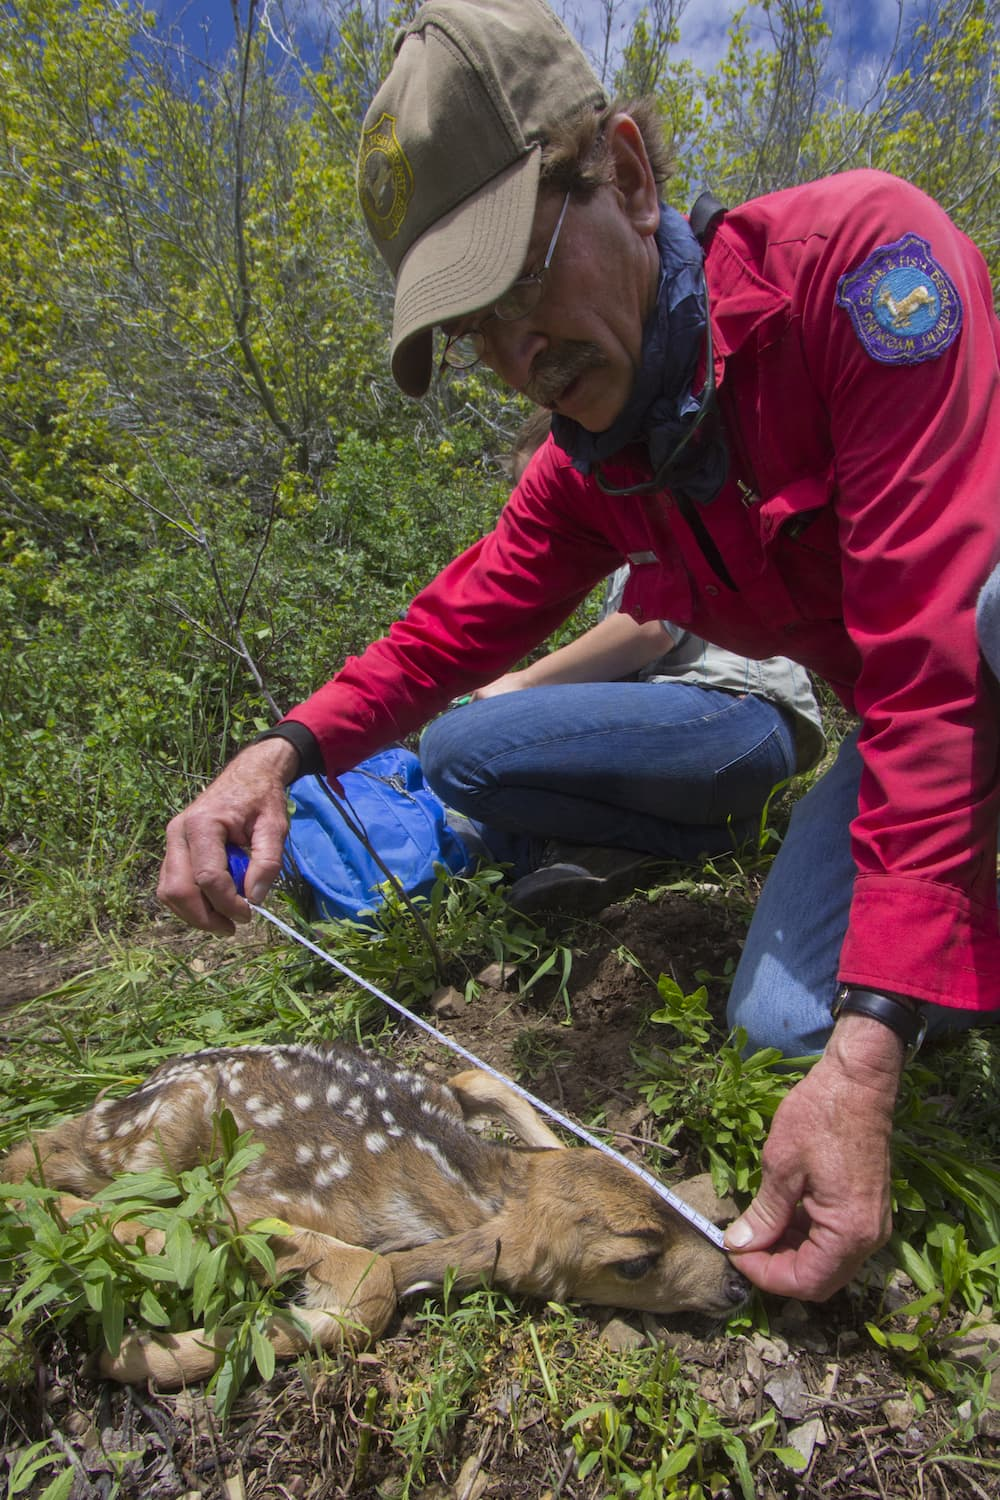 Devastated deer herd offers rare research opportunity for Wyo game fish